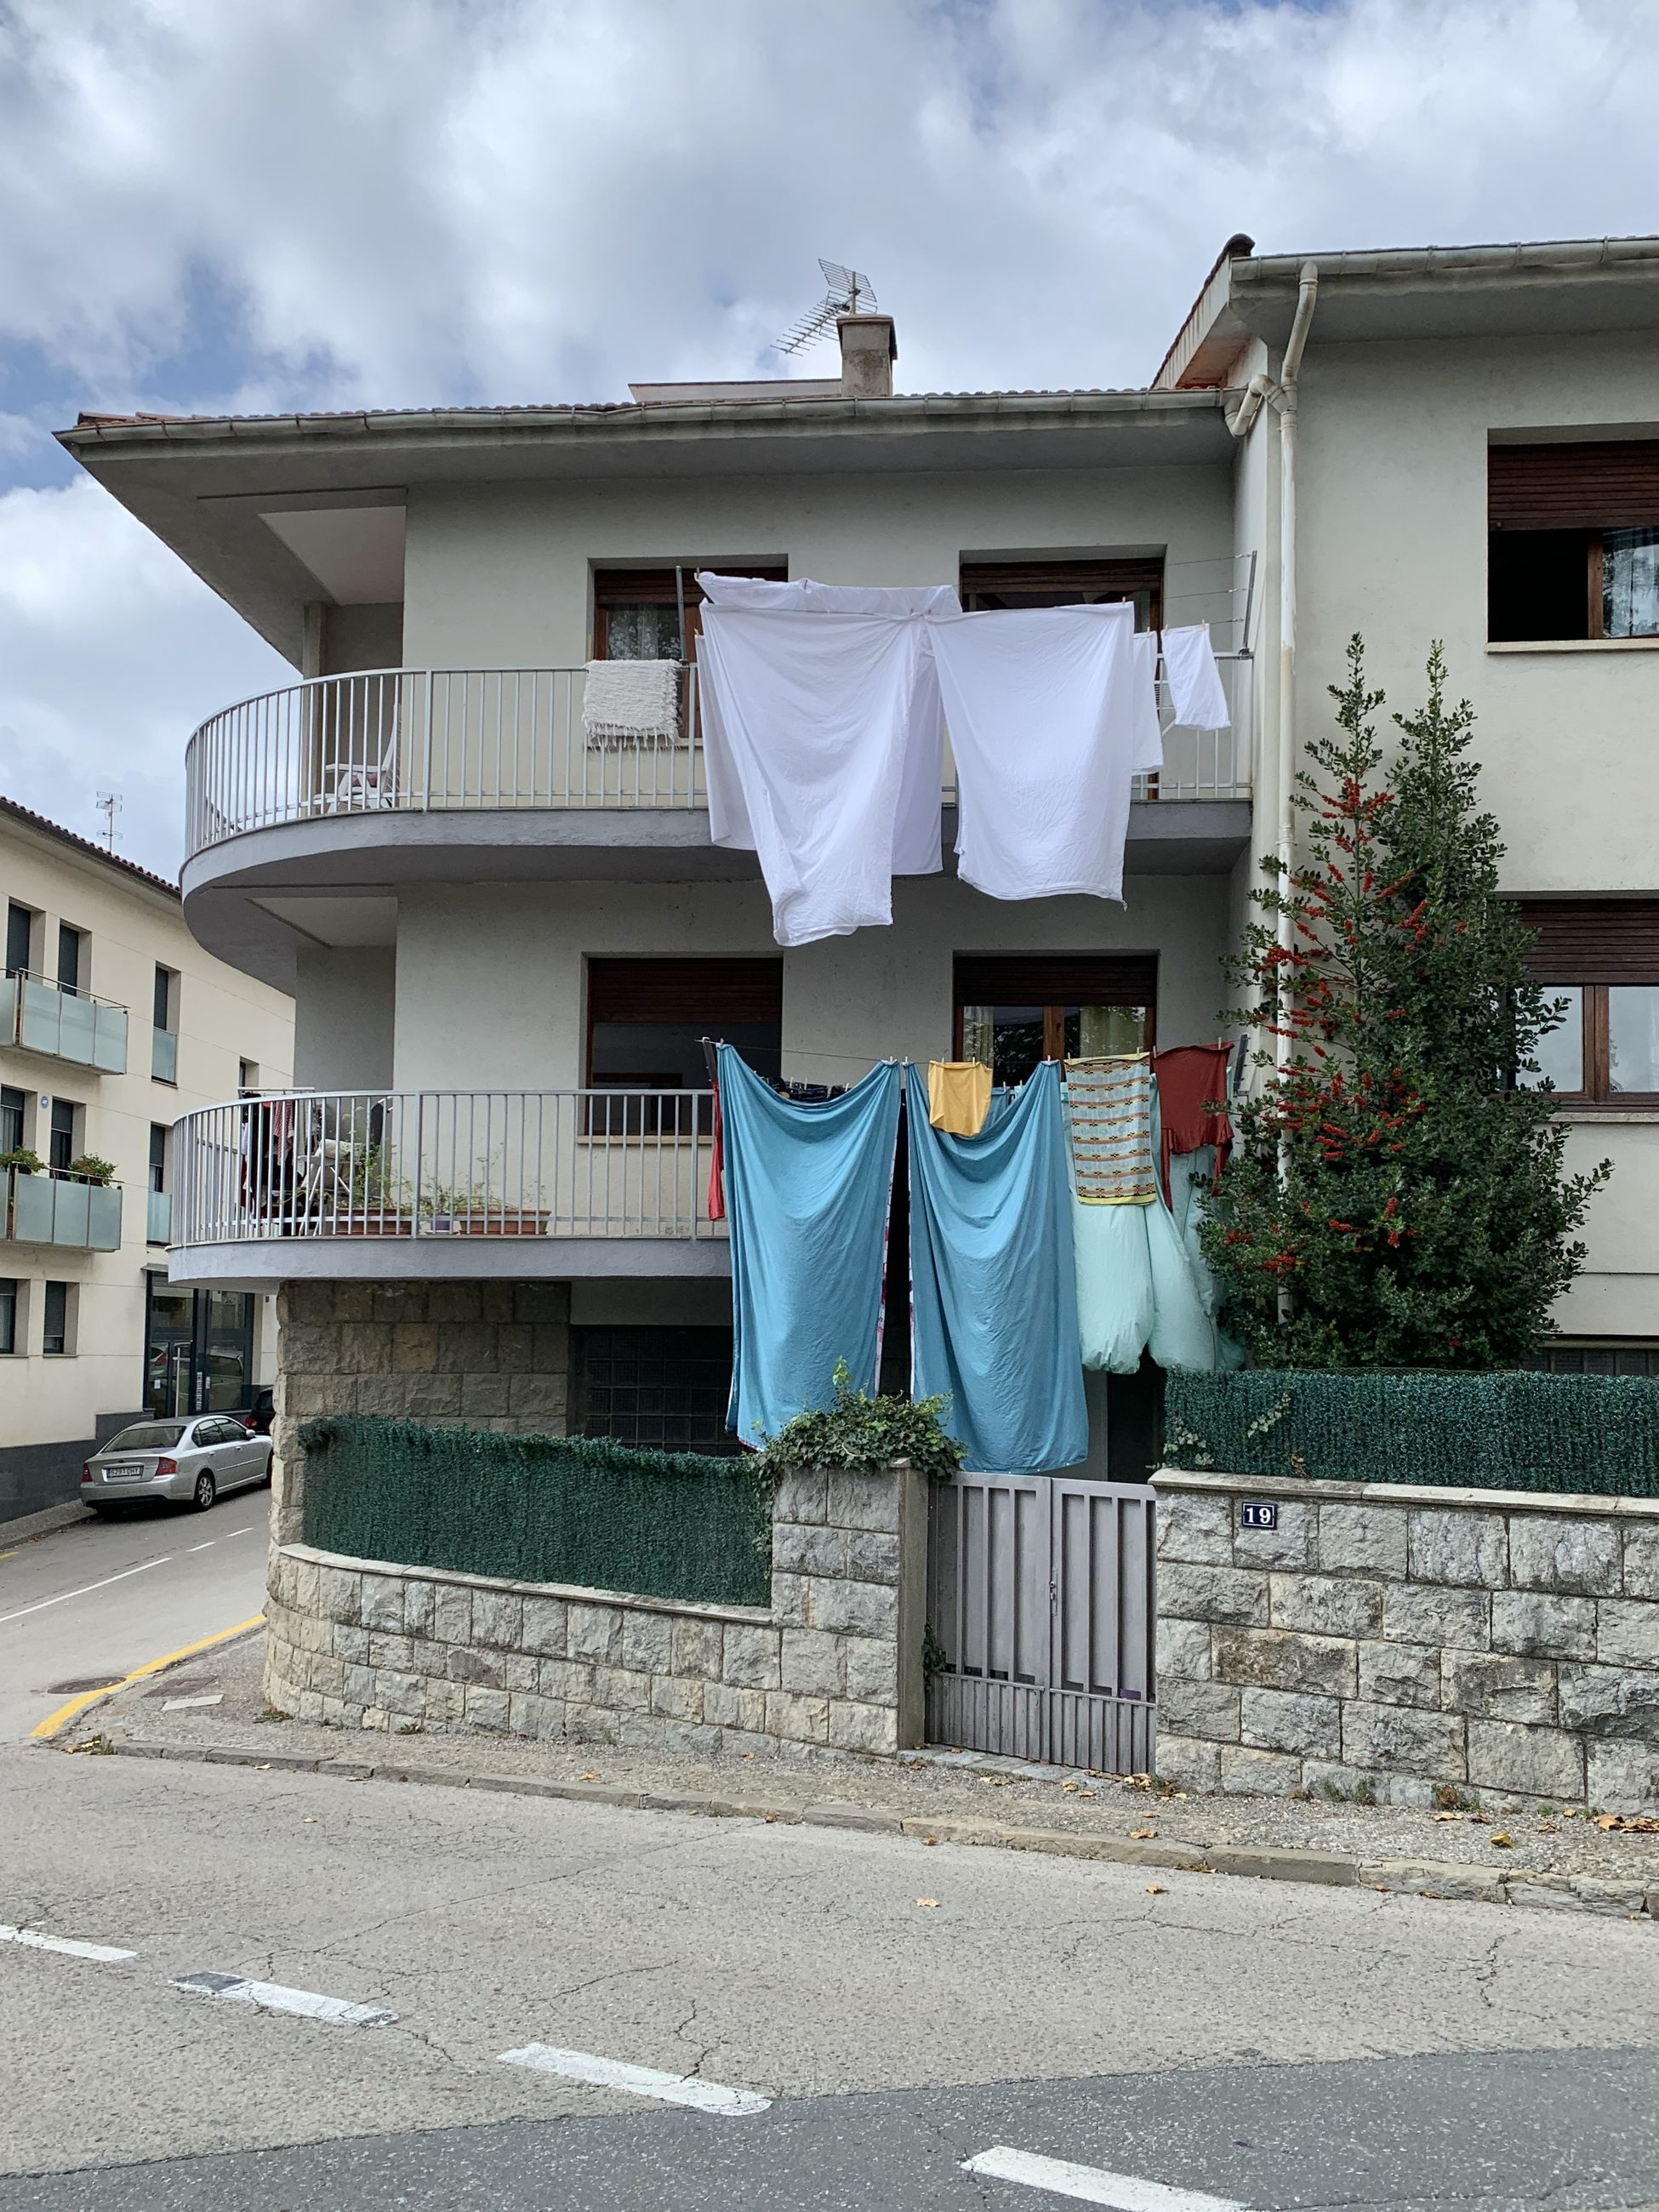 CLOTHES DRYING ON FOOTPATH AGAINST BUILDING